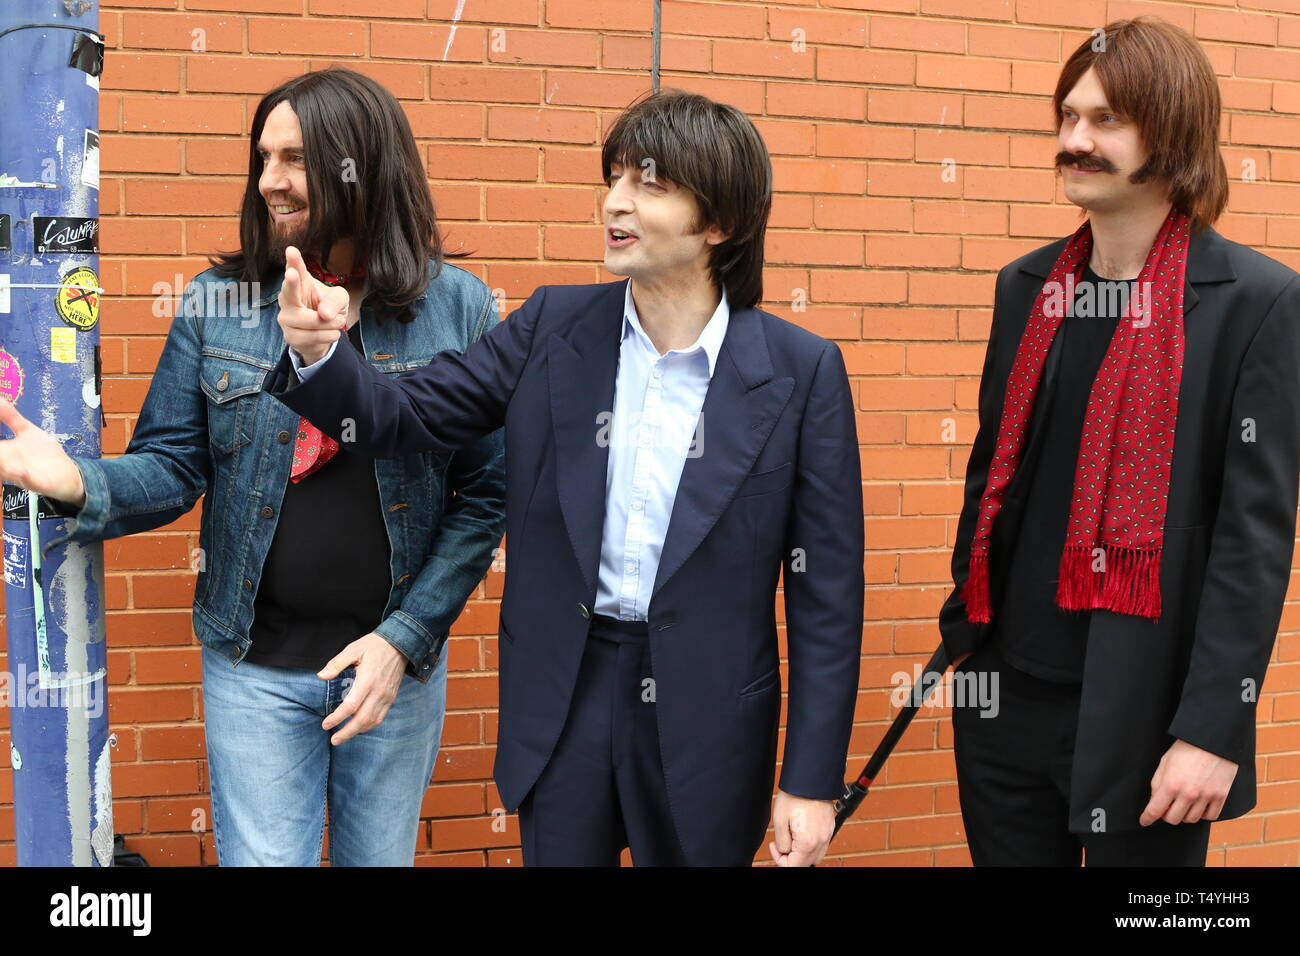 Liverpool, uk CAST OF LET IT BE AT ABBEY ROAD PHOTOSHOOT  CREDIT IAN FAIRBROTHER/ALAMY STOCK PHOTOS - Stock Image